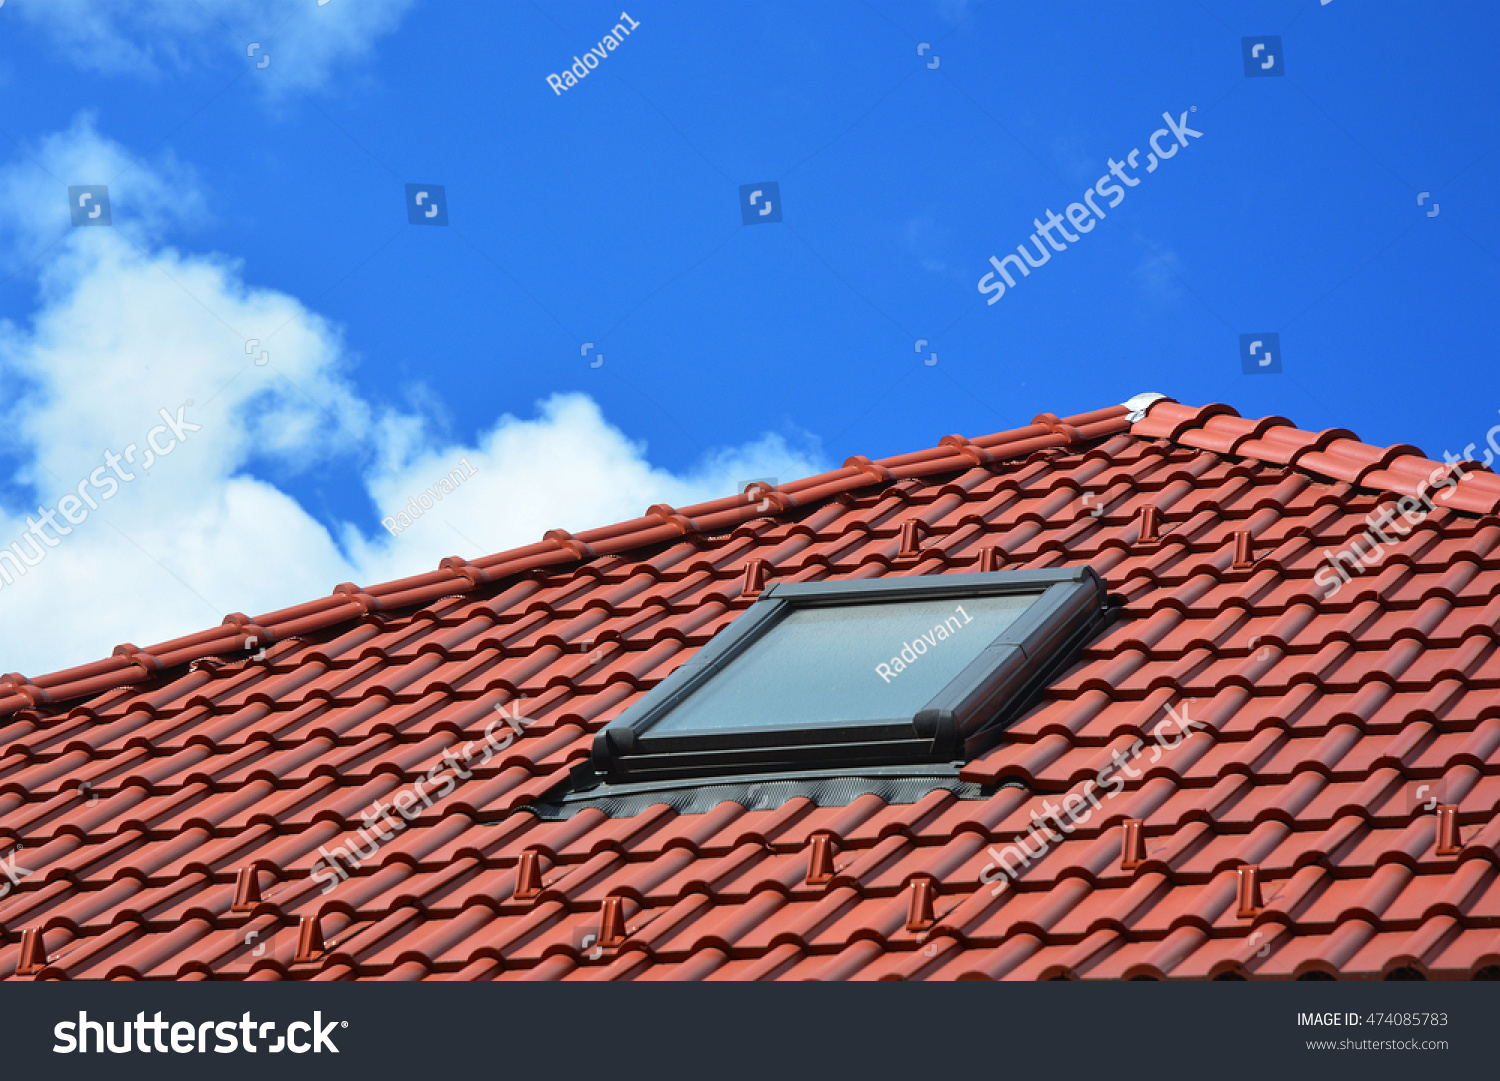 Skylight on red ceramic tiles house stock photo 474085783 skylight on red ceramic tiles house roof skylights roof windows and sun tunnels dailygadgetfo Choice Image